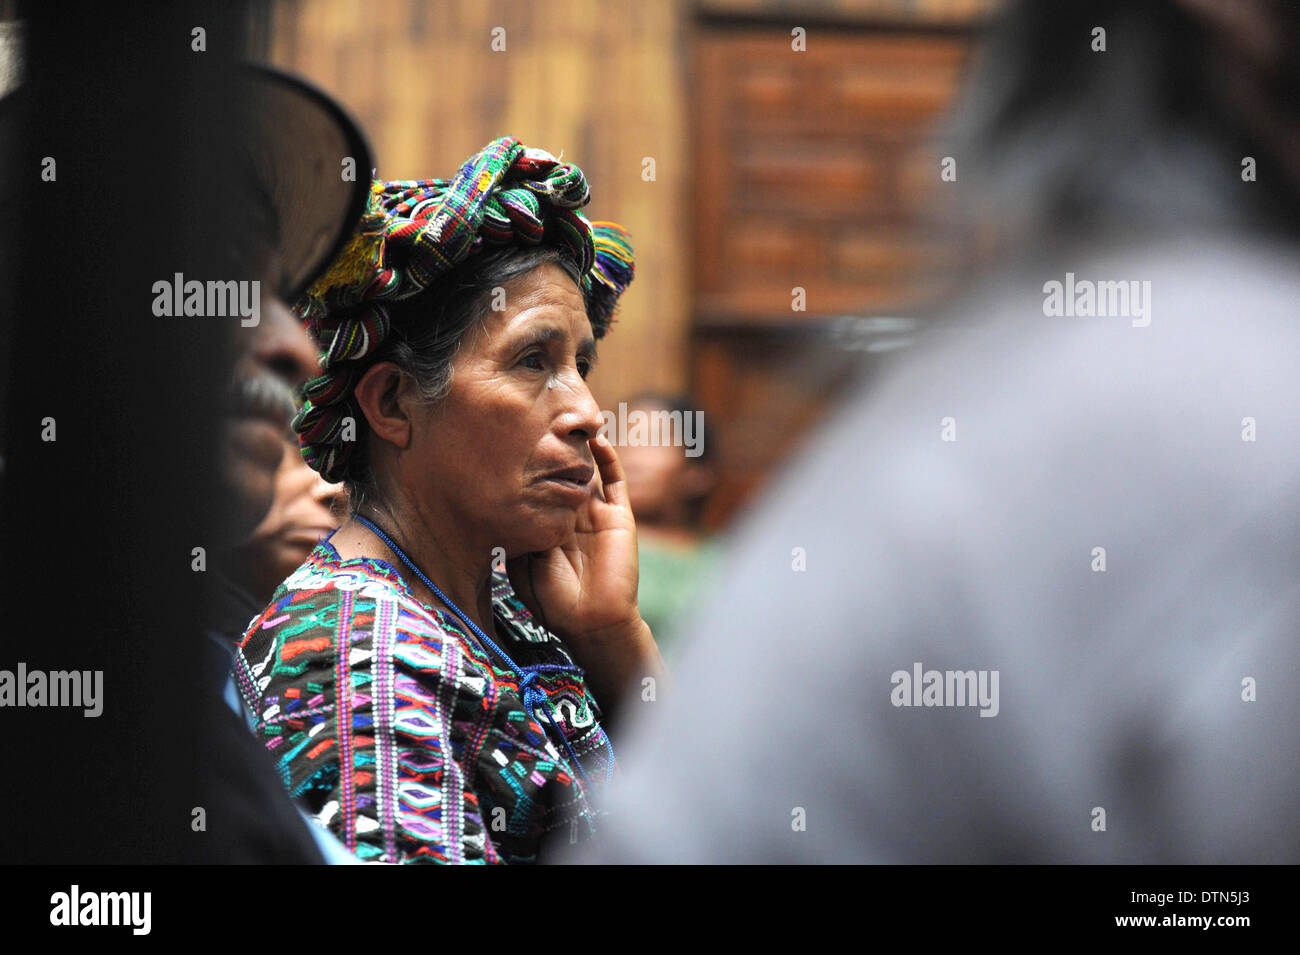 Maya Ixil woman listen to testimony during Genocide trial in the Supreme Court of Justice Guatemala CIty March 19, 2013. - Stock Image